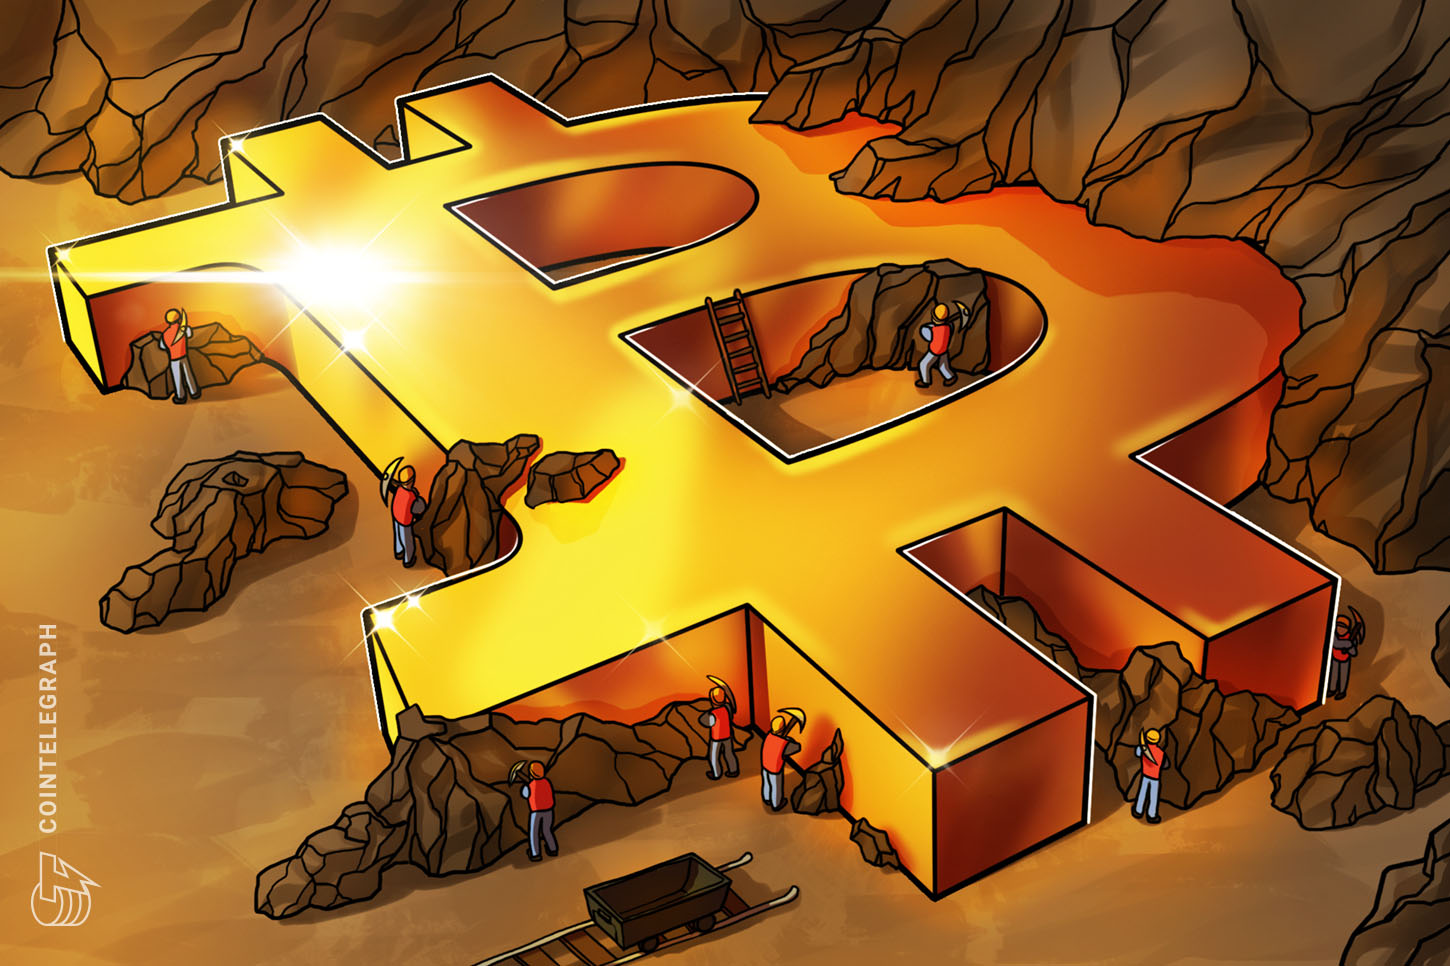 Bitcoin miners' revenue rebounds to $60M per day — Is the bull run about to resume?